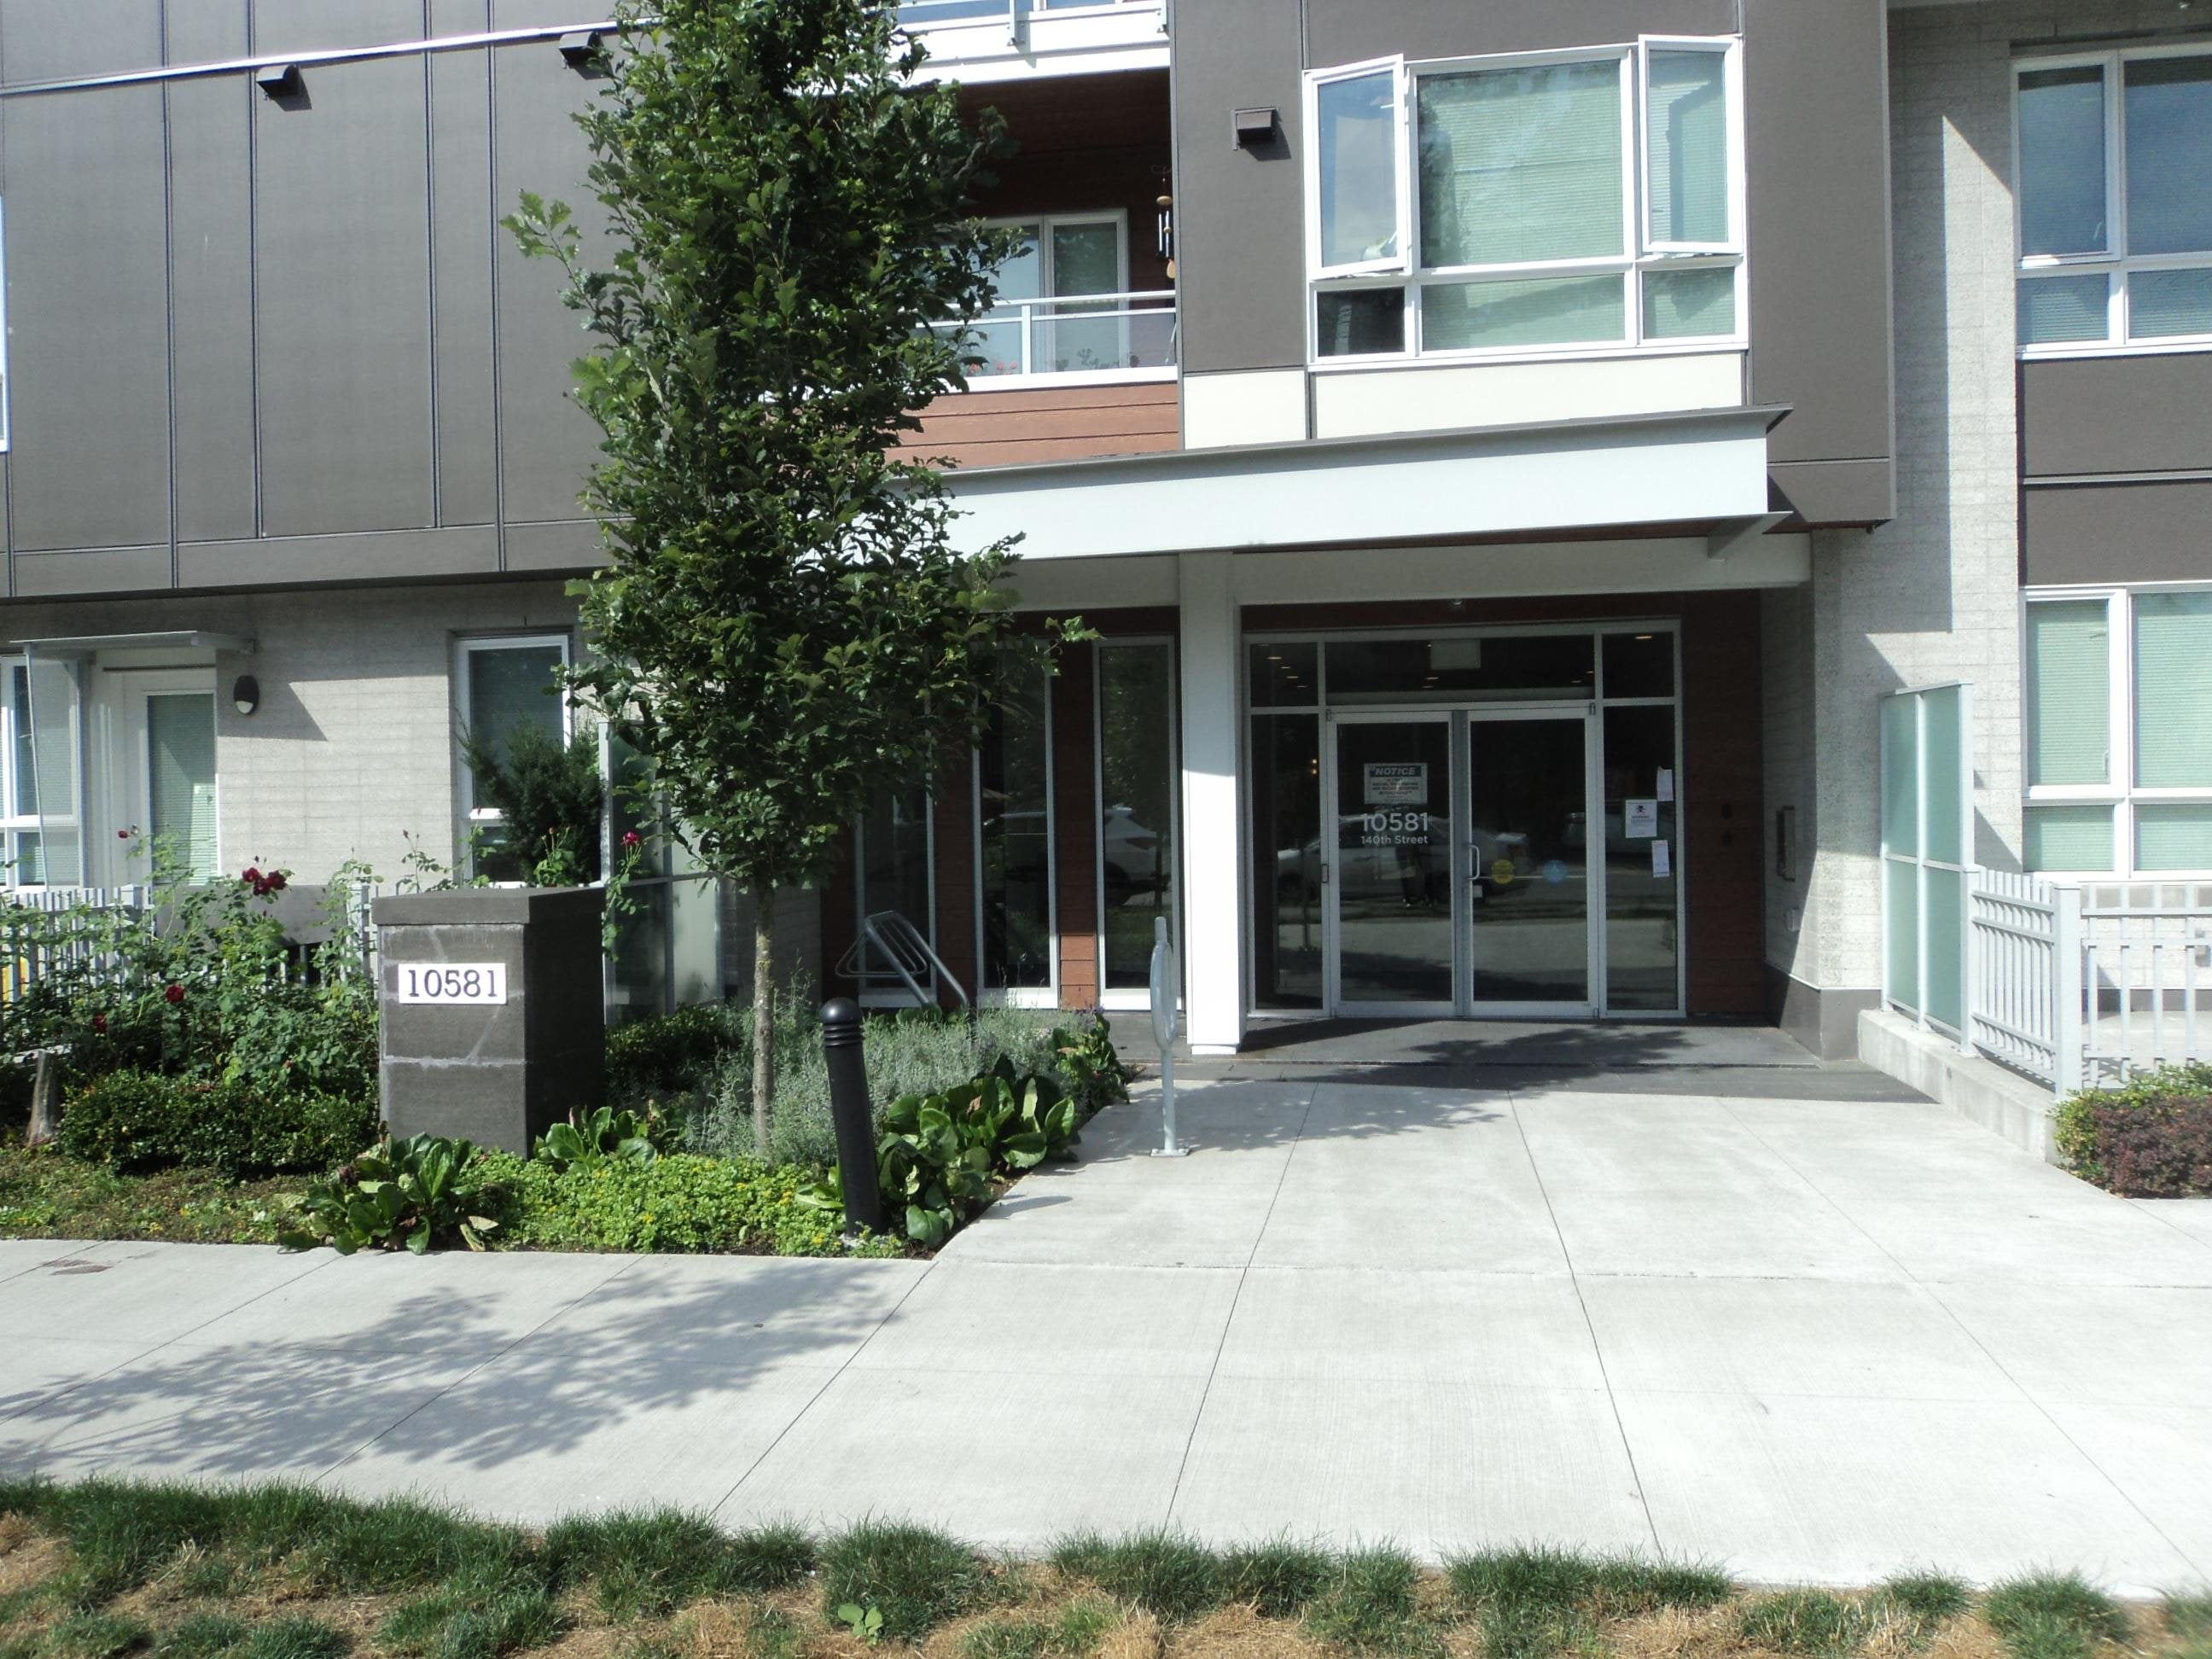 207 10581 140 STREET - Whalley Apartment/Condo for sale, 2 Bedrooms (R2615061) - #2